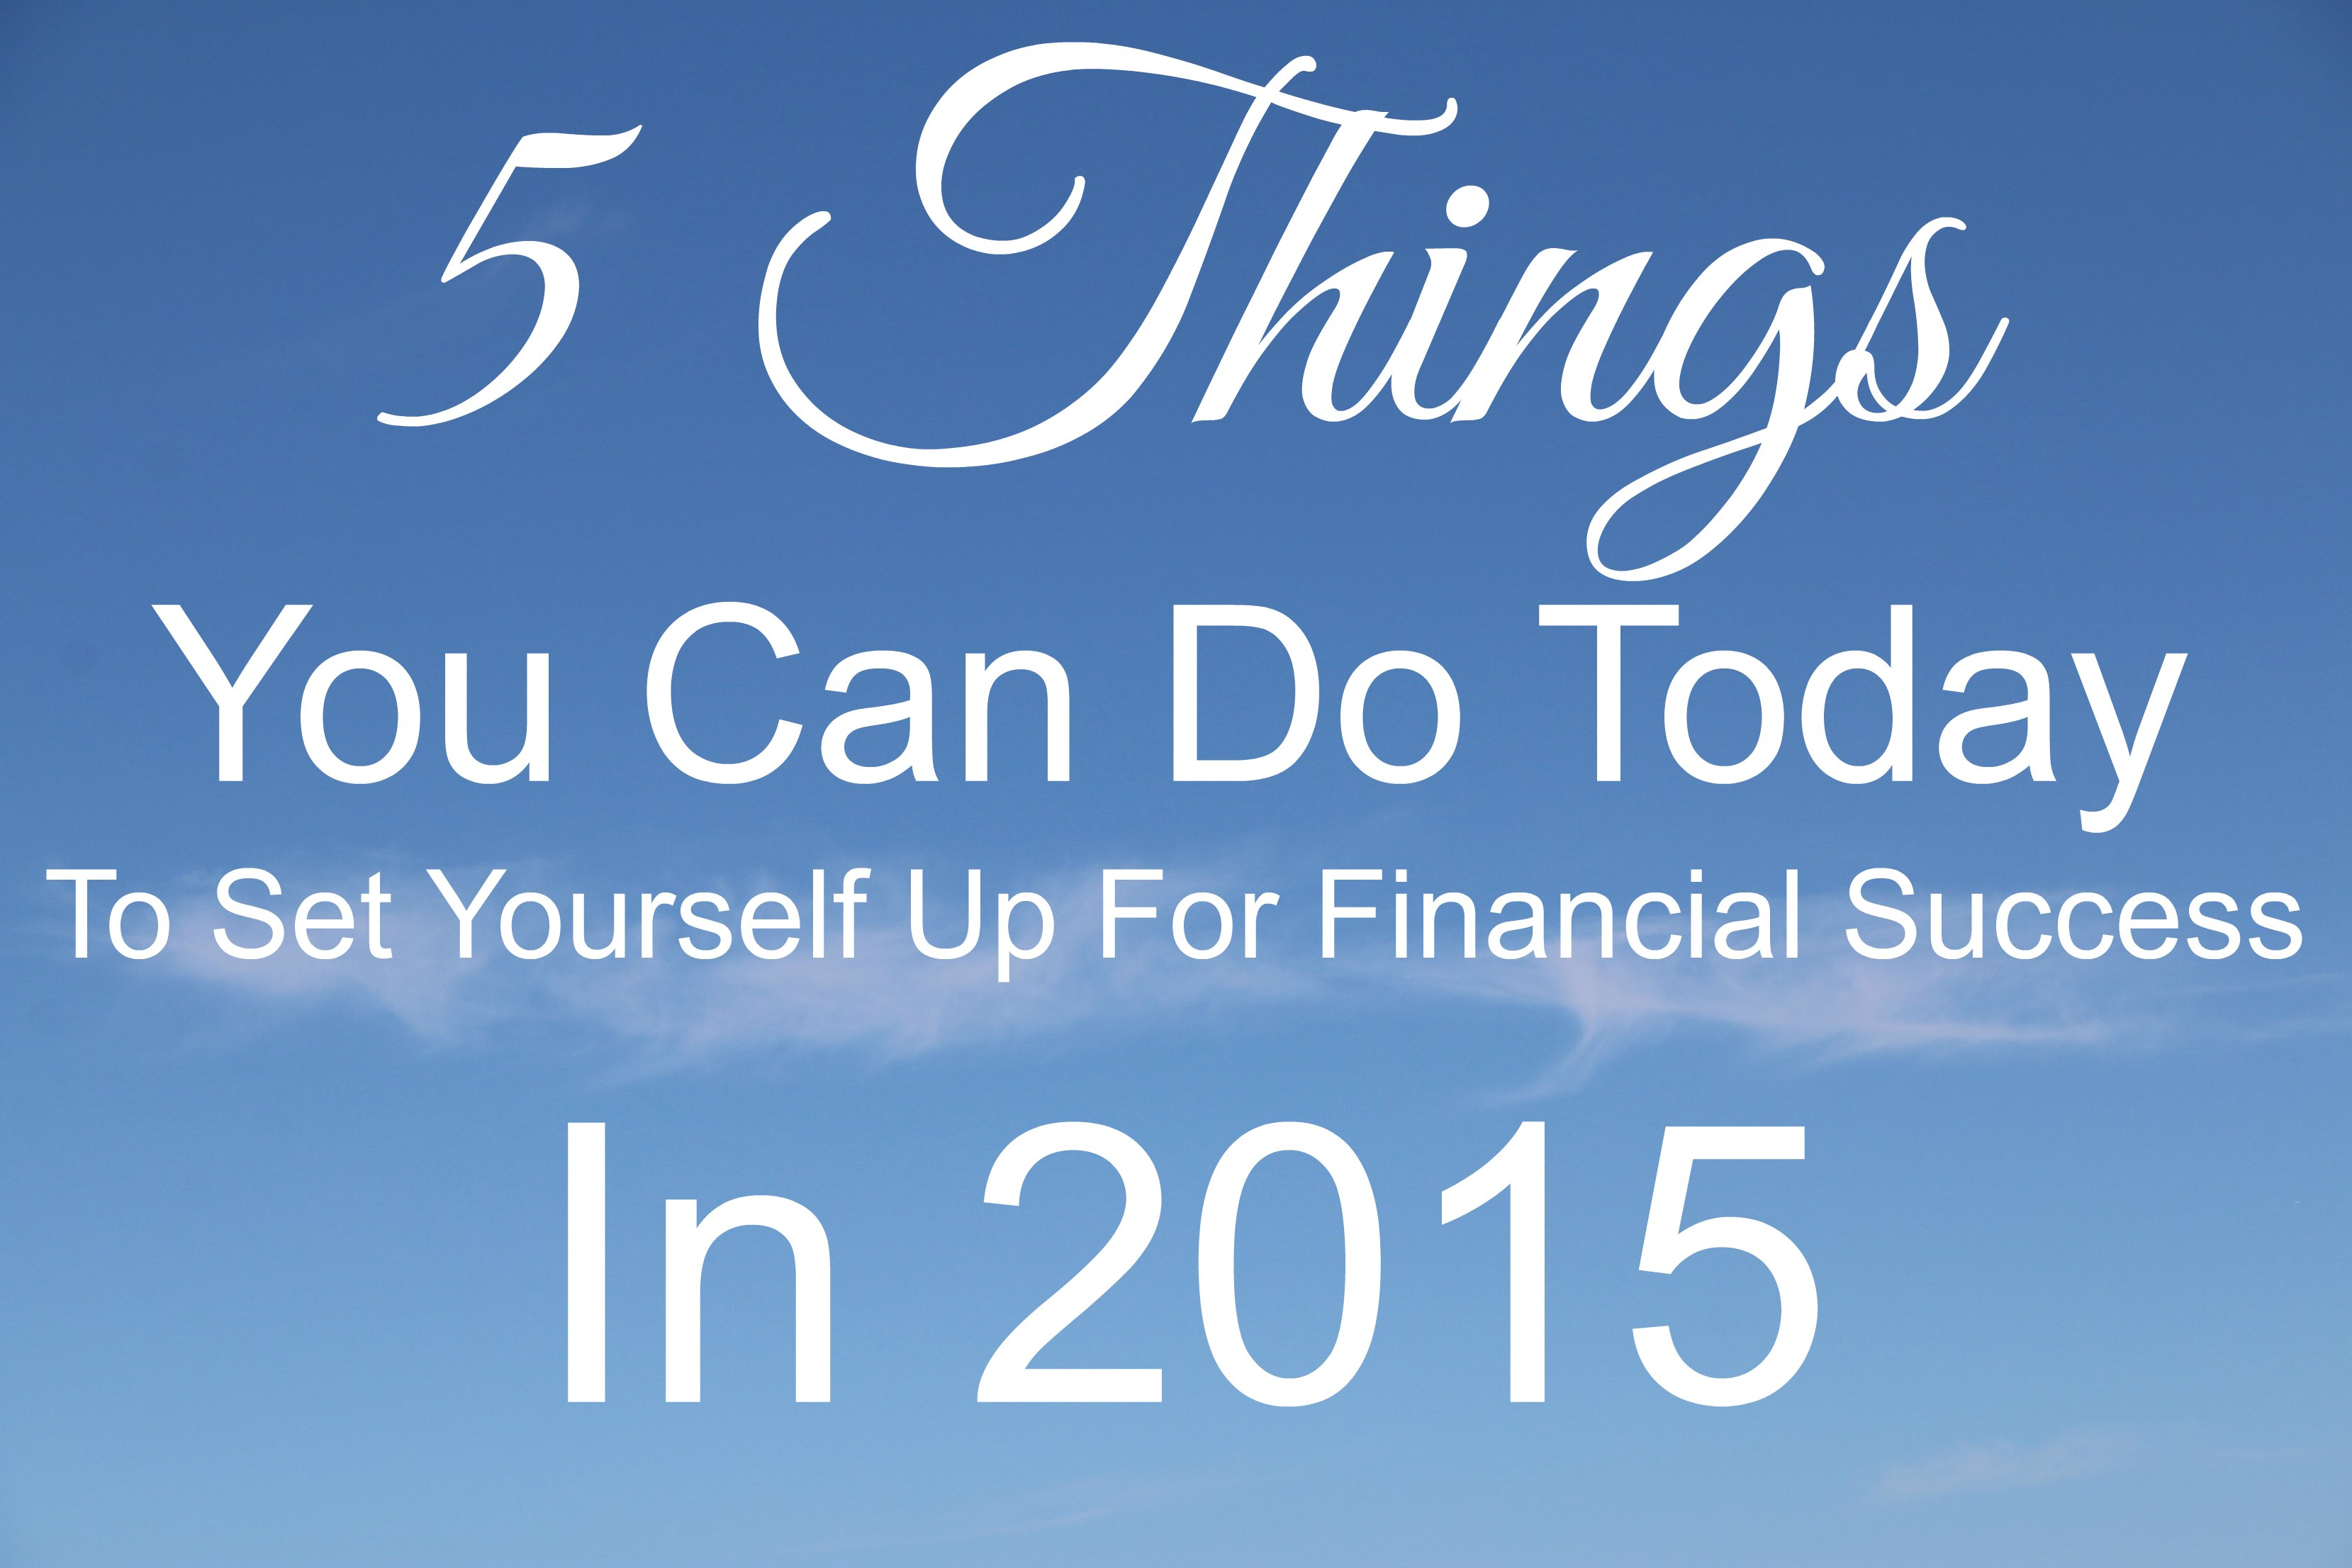 5 things for financial success